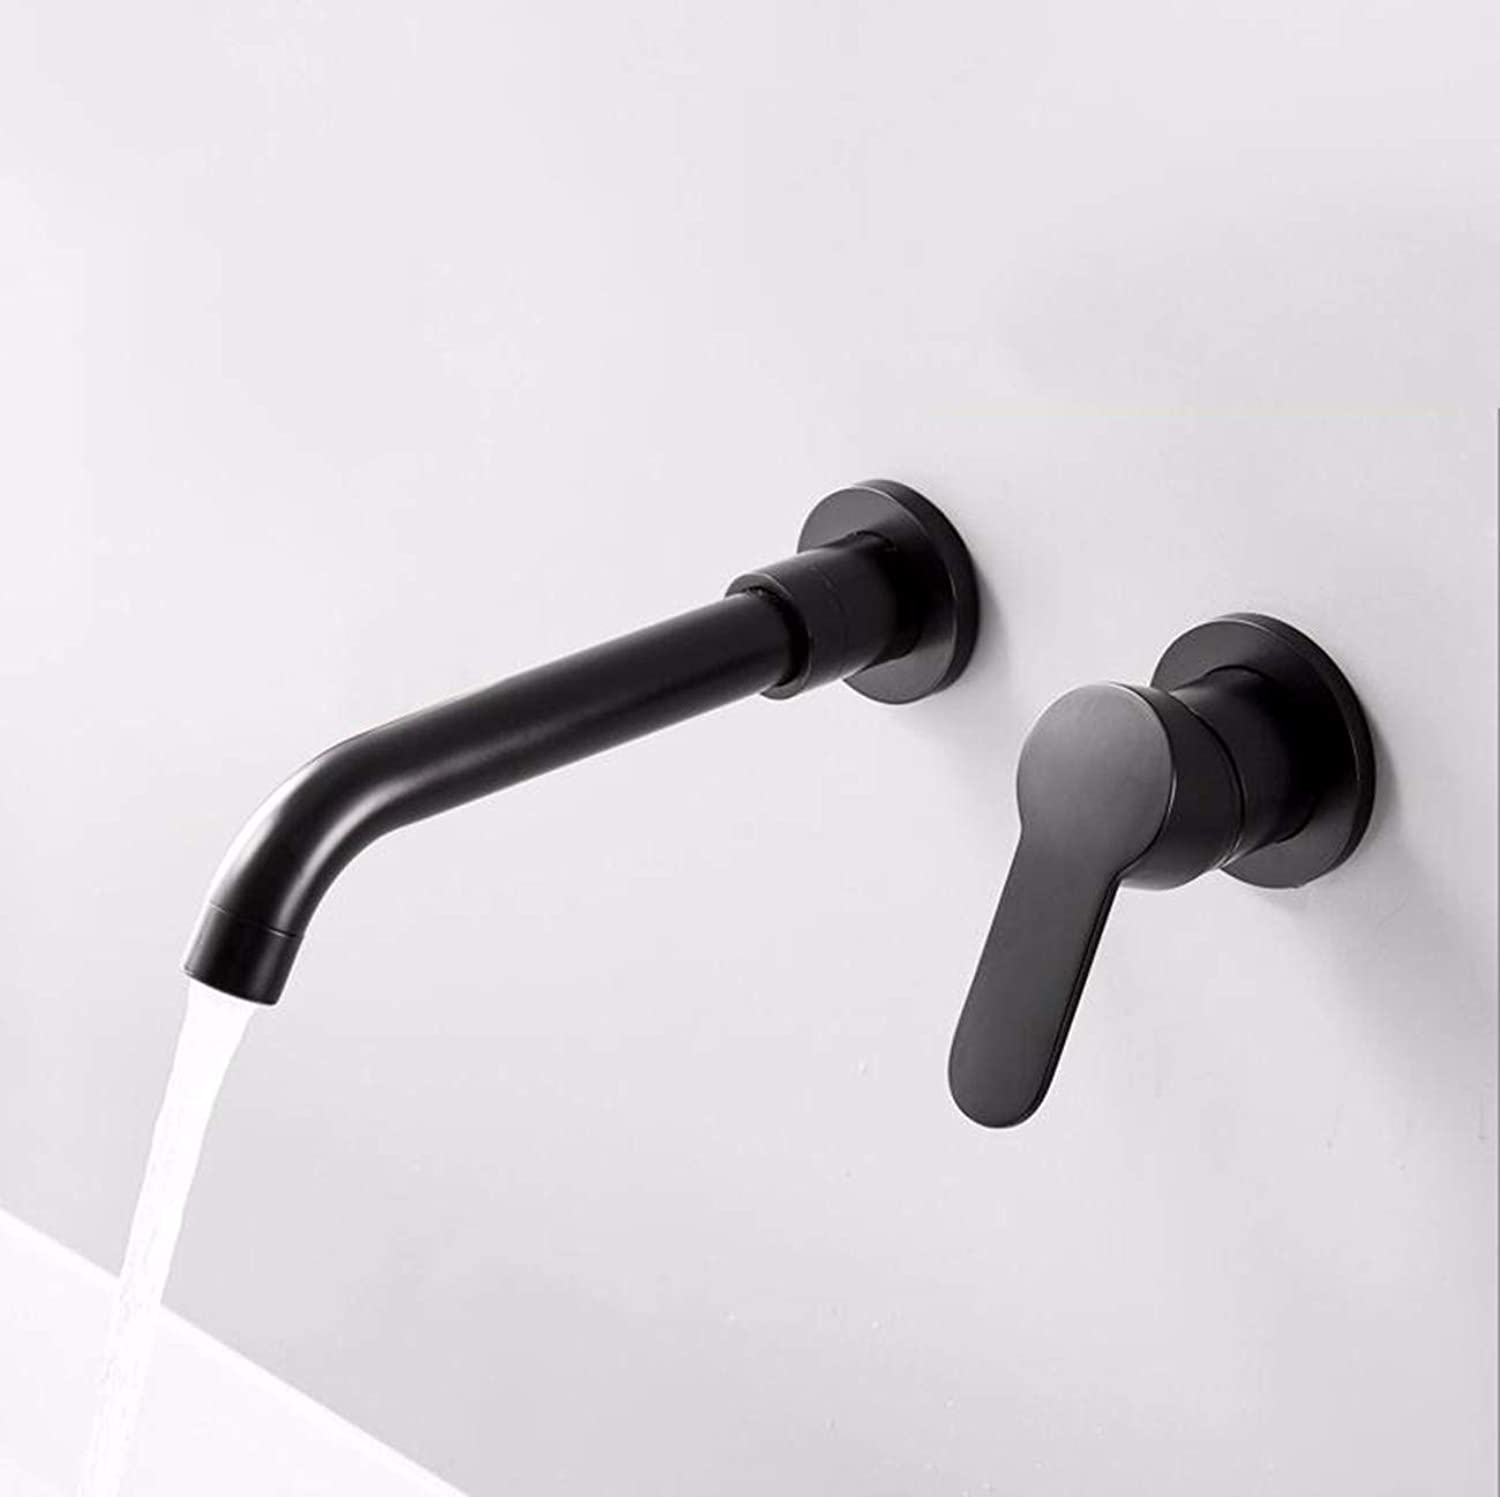 XPYFaucet Faucet Tap Taps Matte black copper body concealed wall-mounted hot and cold basin bathroom washbasin